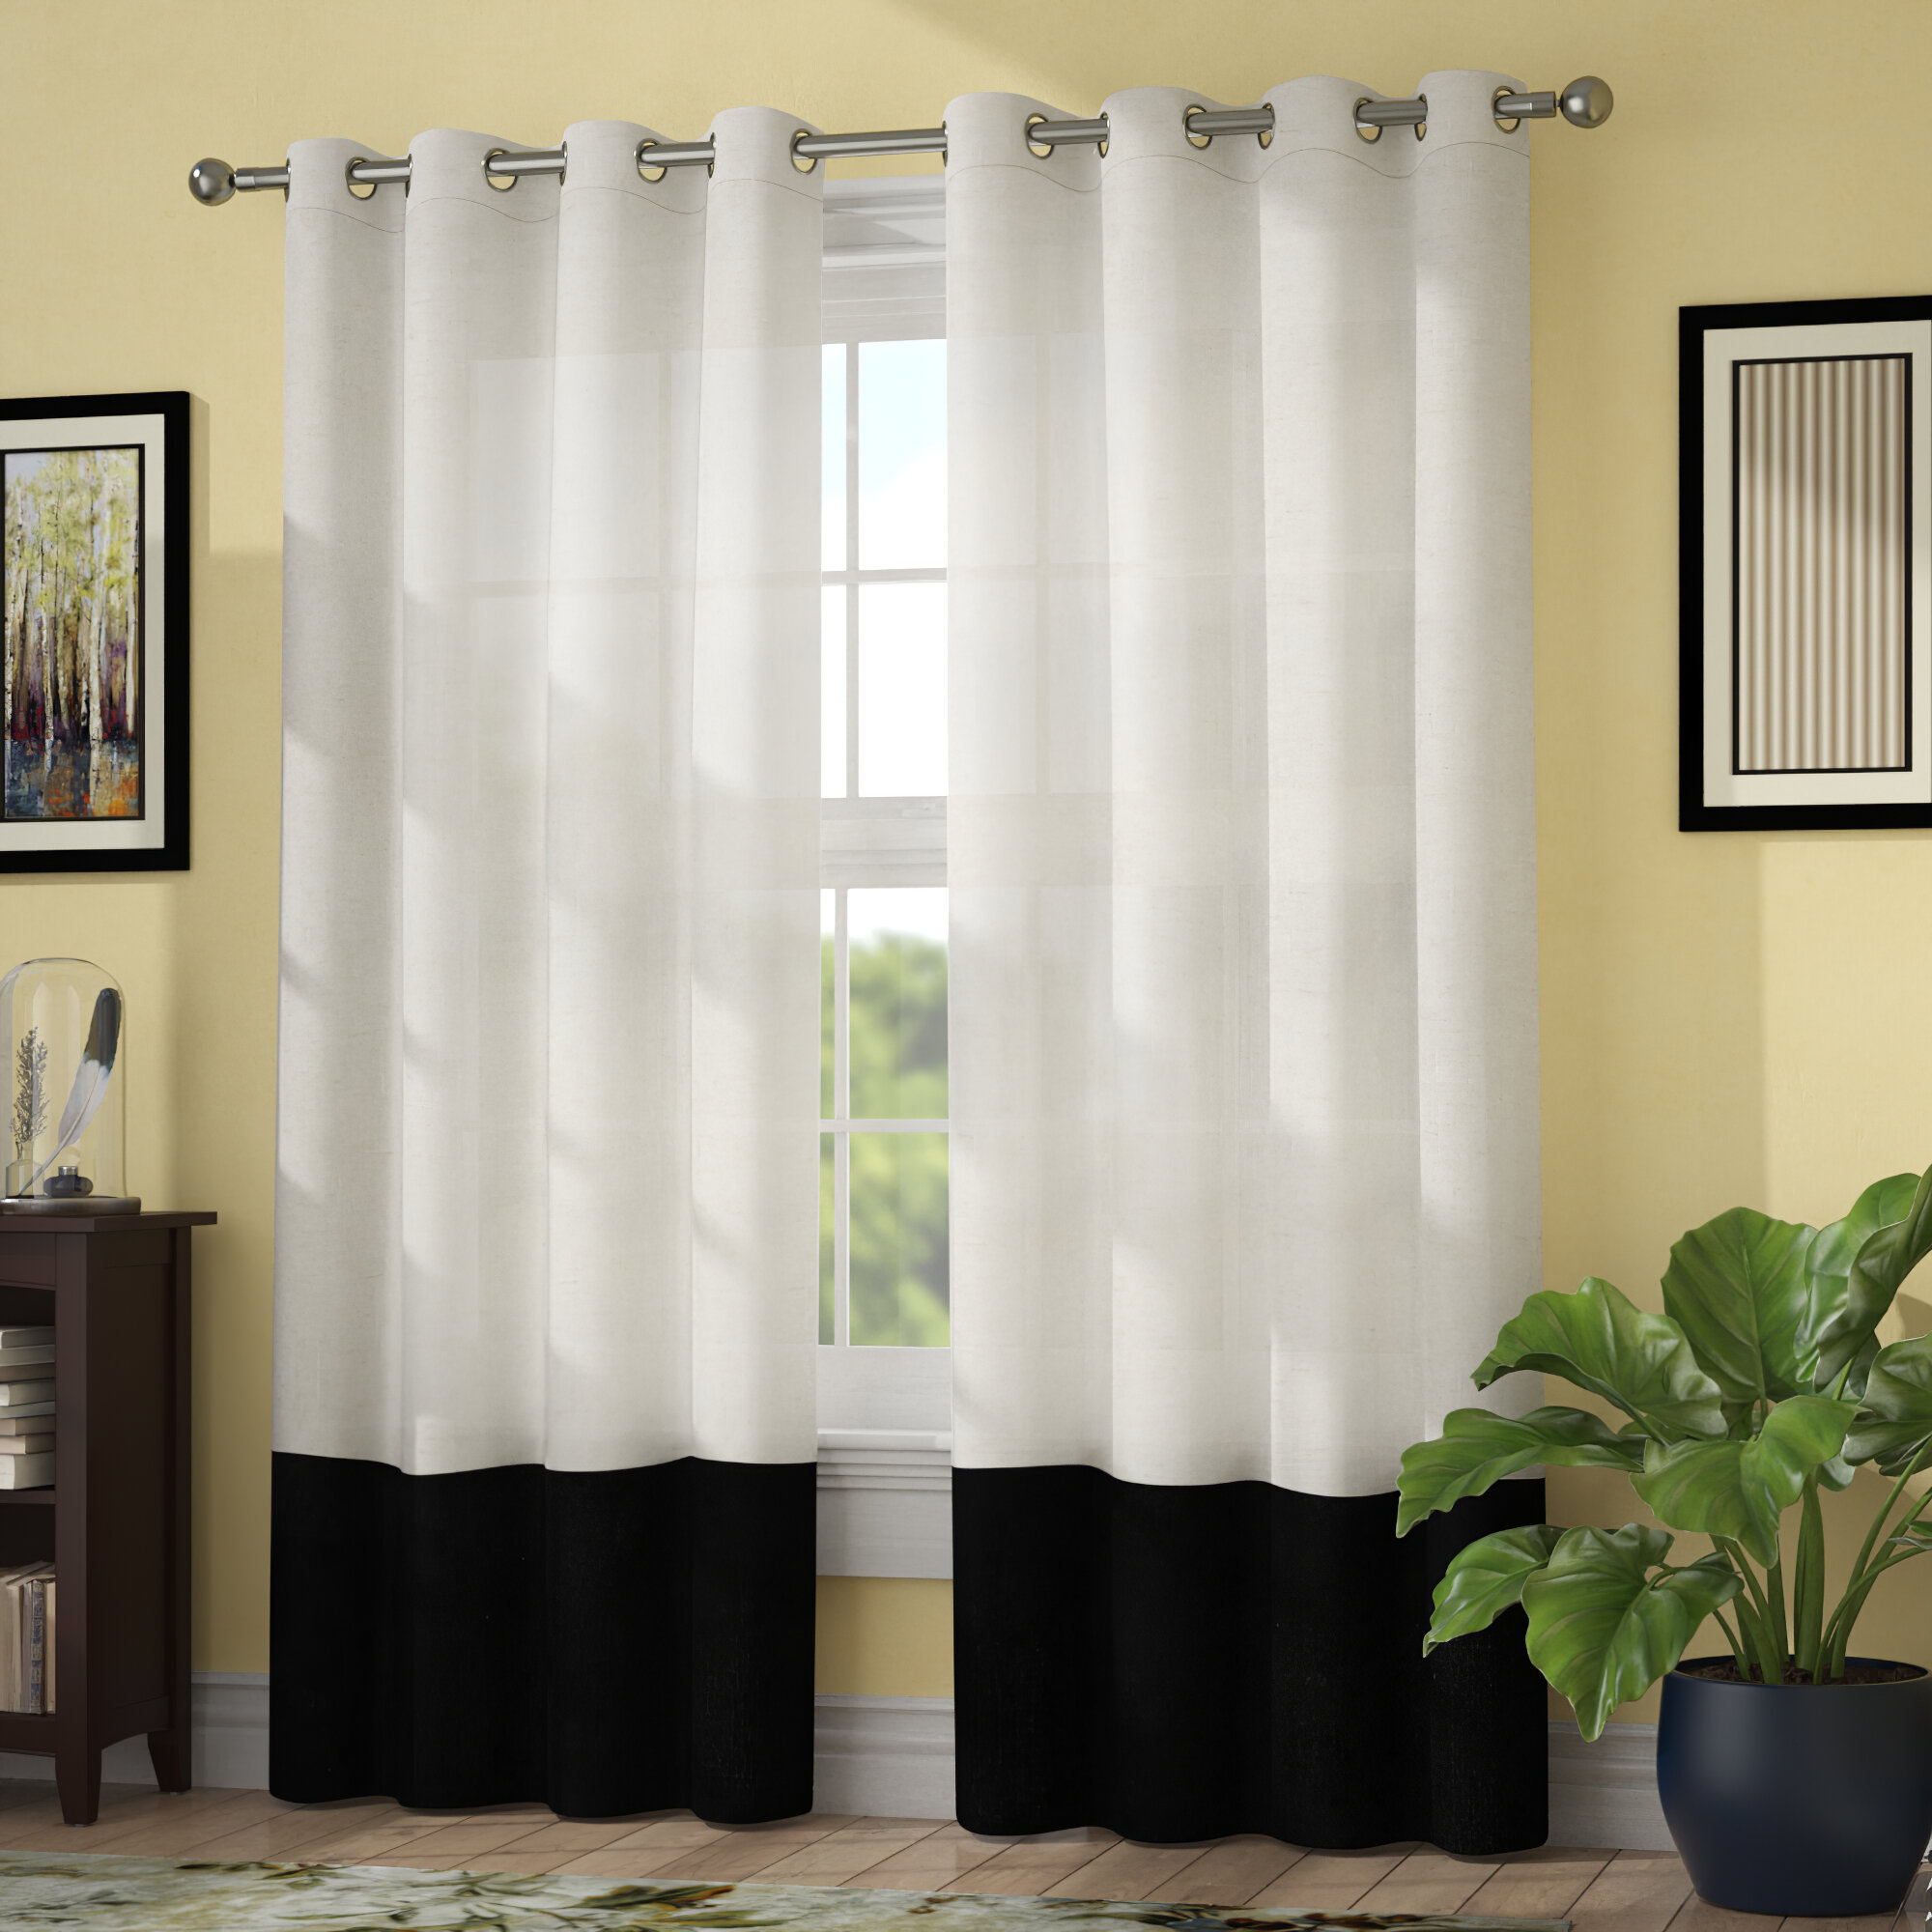 Remy Light Filtering Single Grommet Curtain Panel With Inez Patio Door Window Curtain Panels (View 15 of 20)